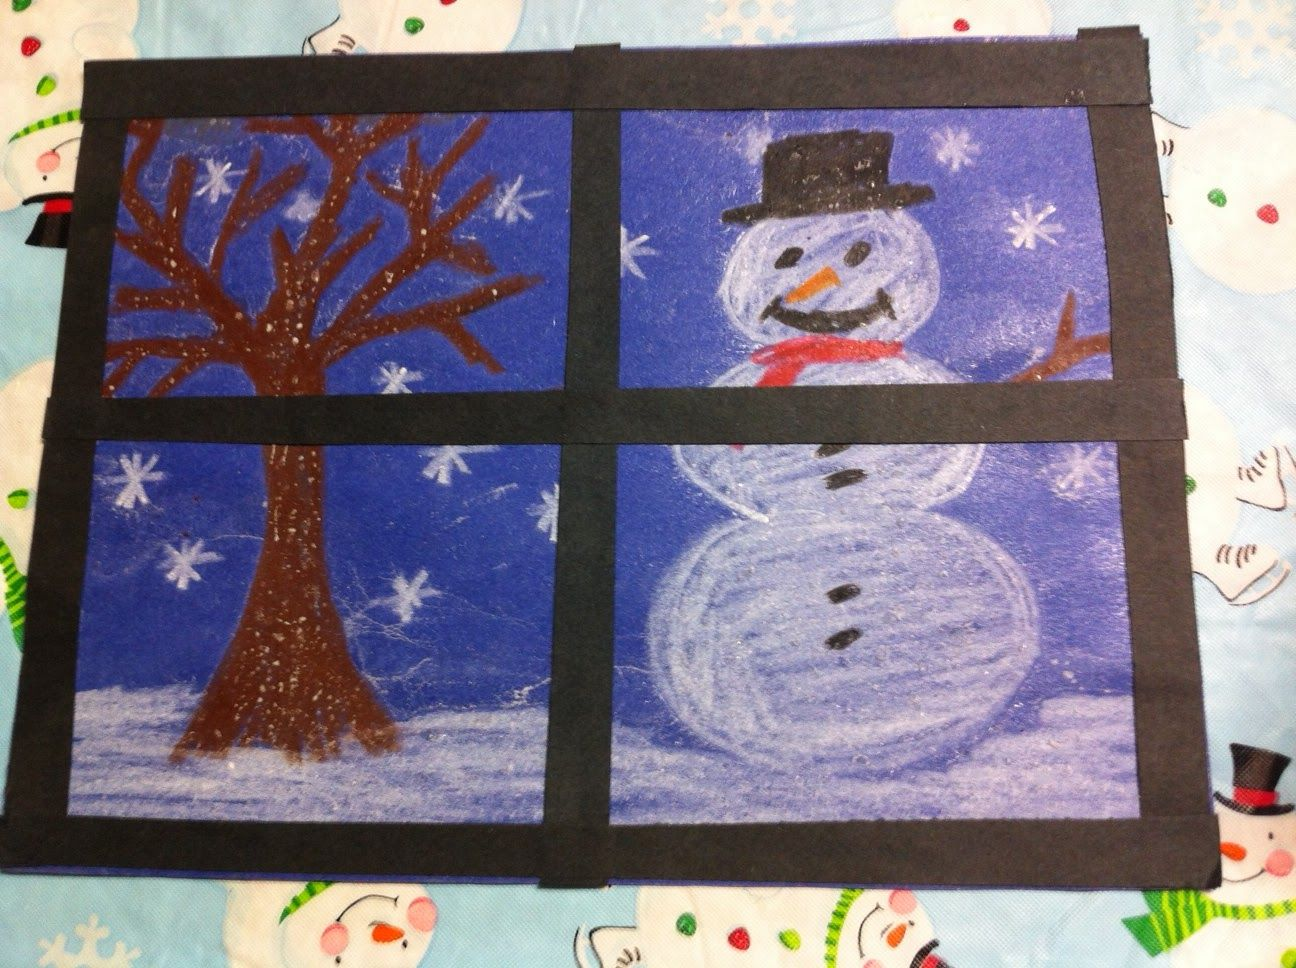 Art Projects For Christmas | Kindergarten Kids At Play: Fun Winter